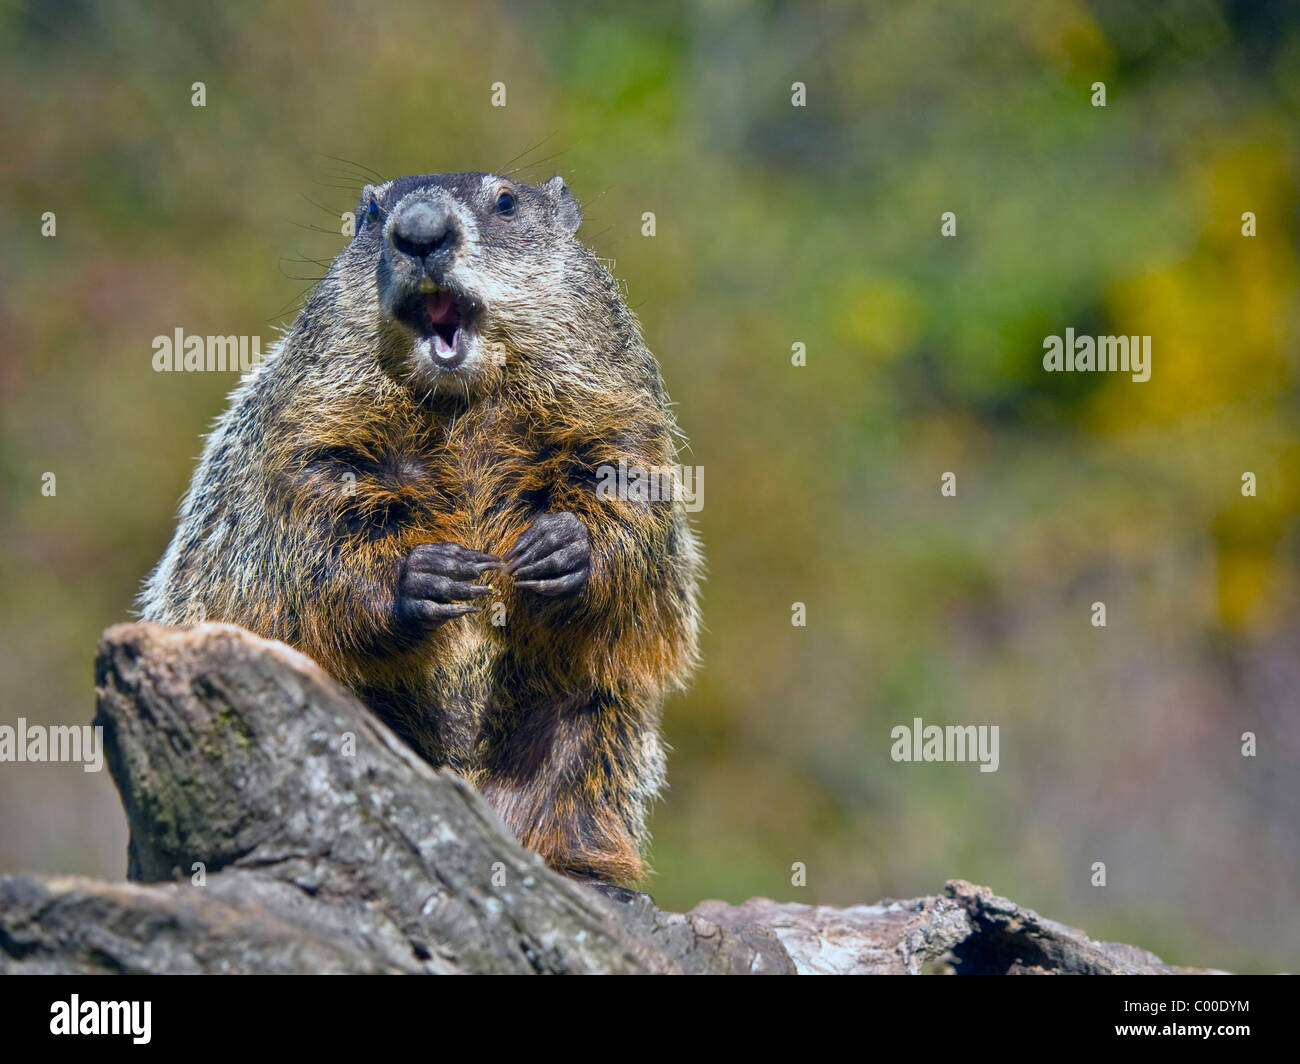 Close up of a woodchuck eating a peanut. The groundhog (Marmota monax), also known as a woodchuck or whistle-pig - Stock Image